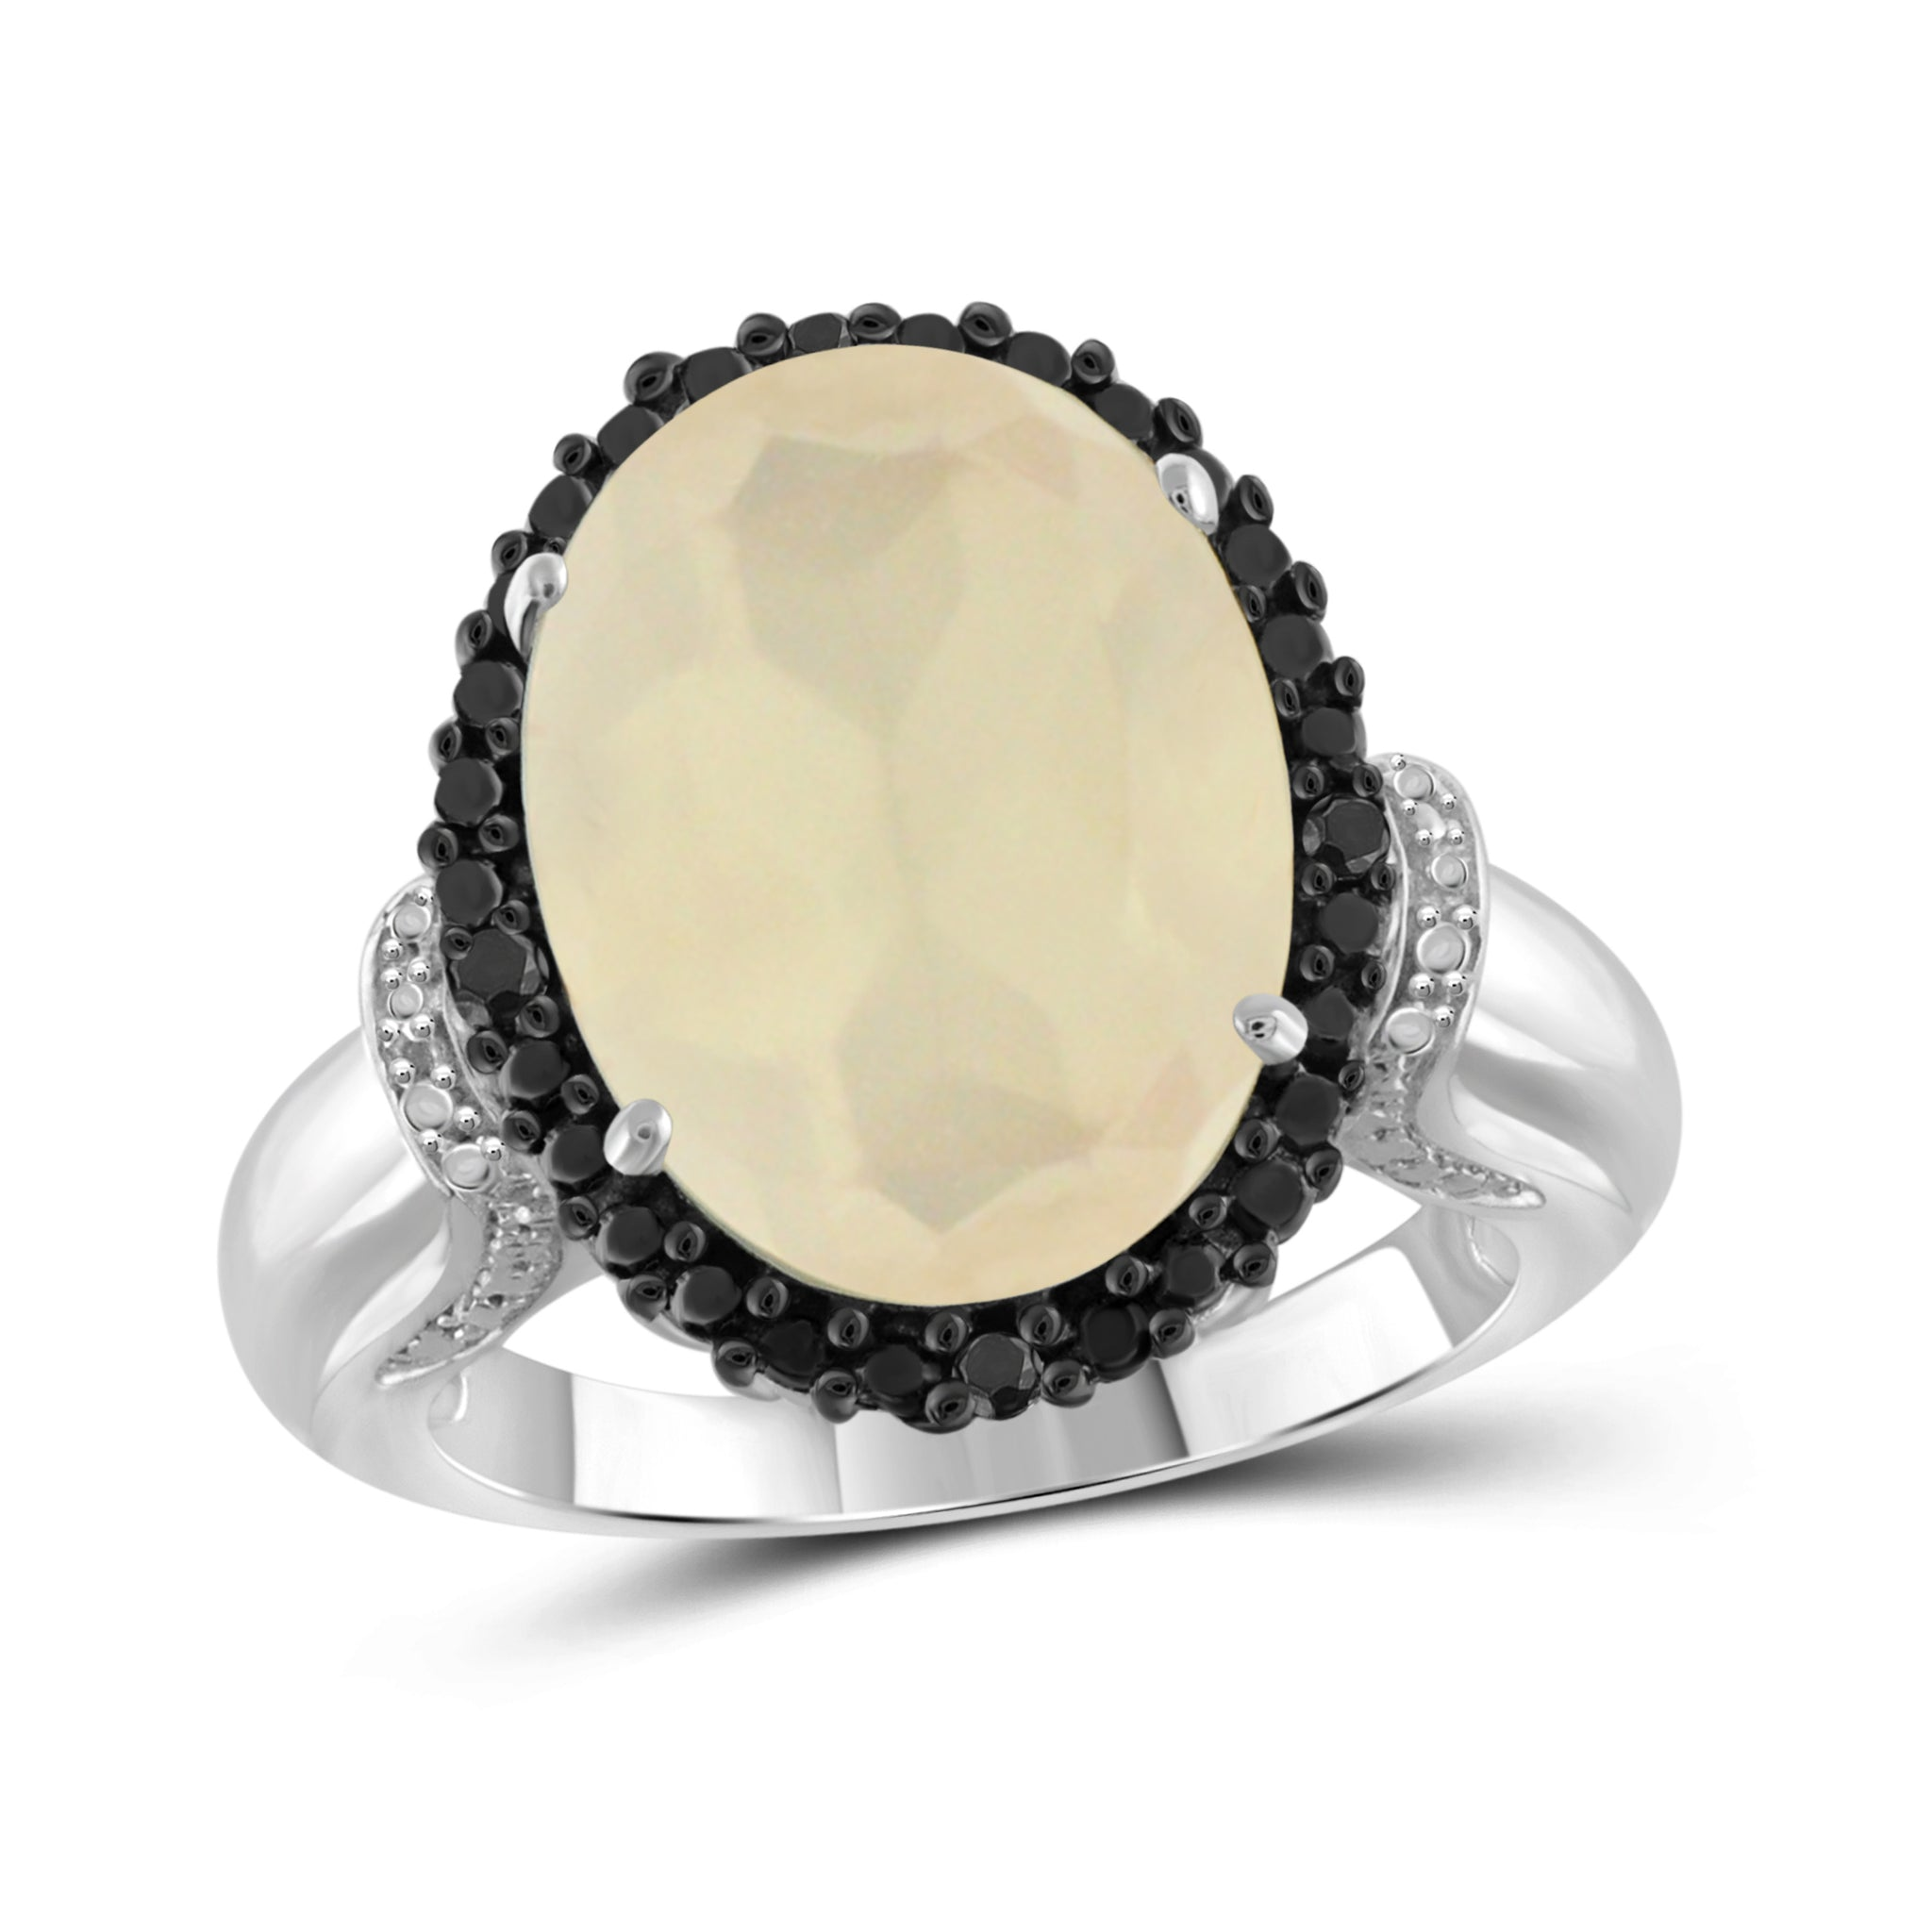 JewelersClub 8 1/4 Carat T.G.W. Moon and Black and White Diamond Accent Sterling Silver Ring